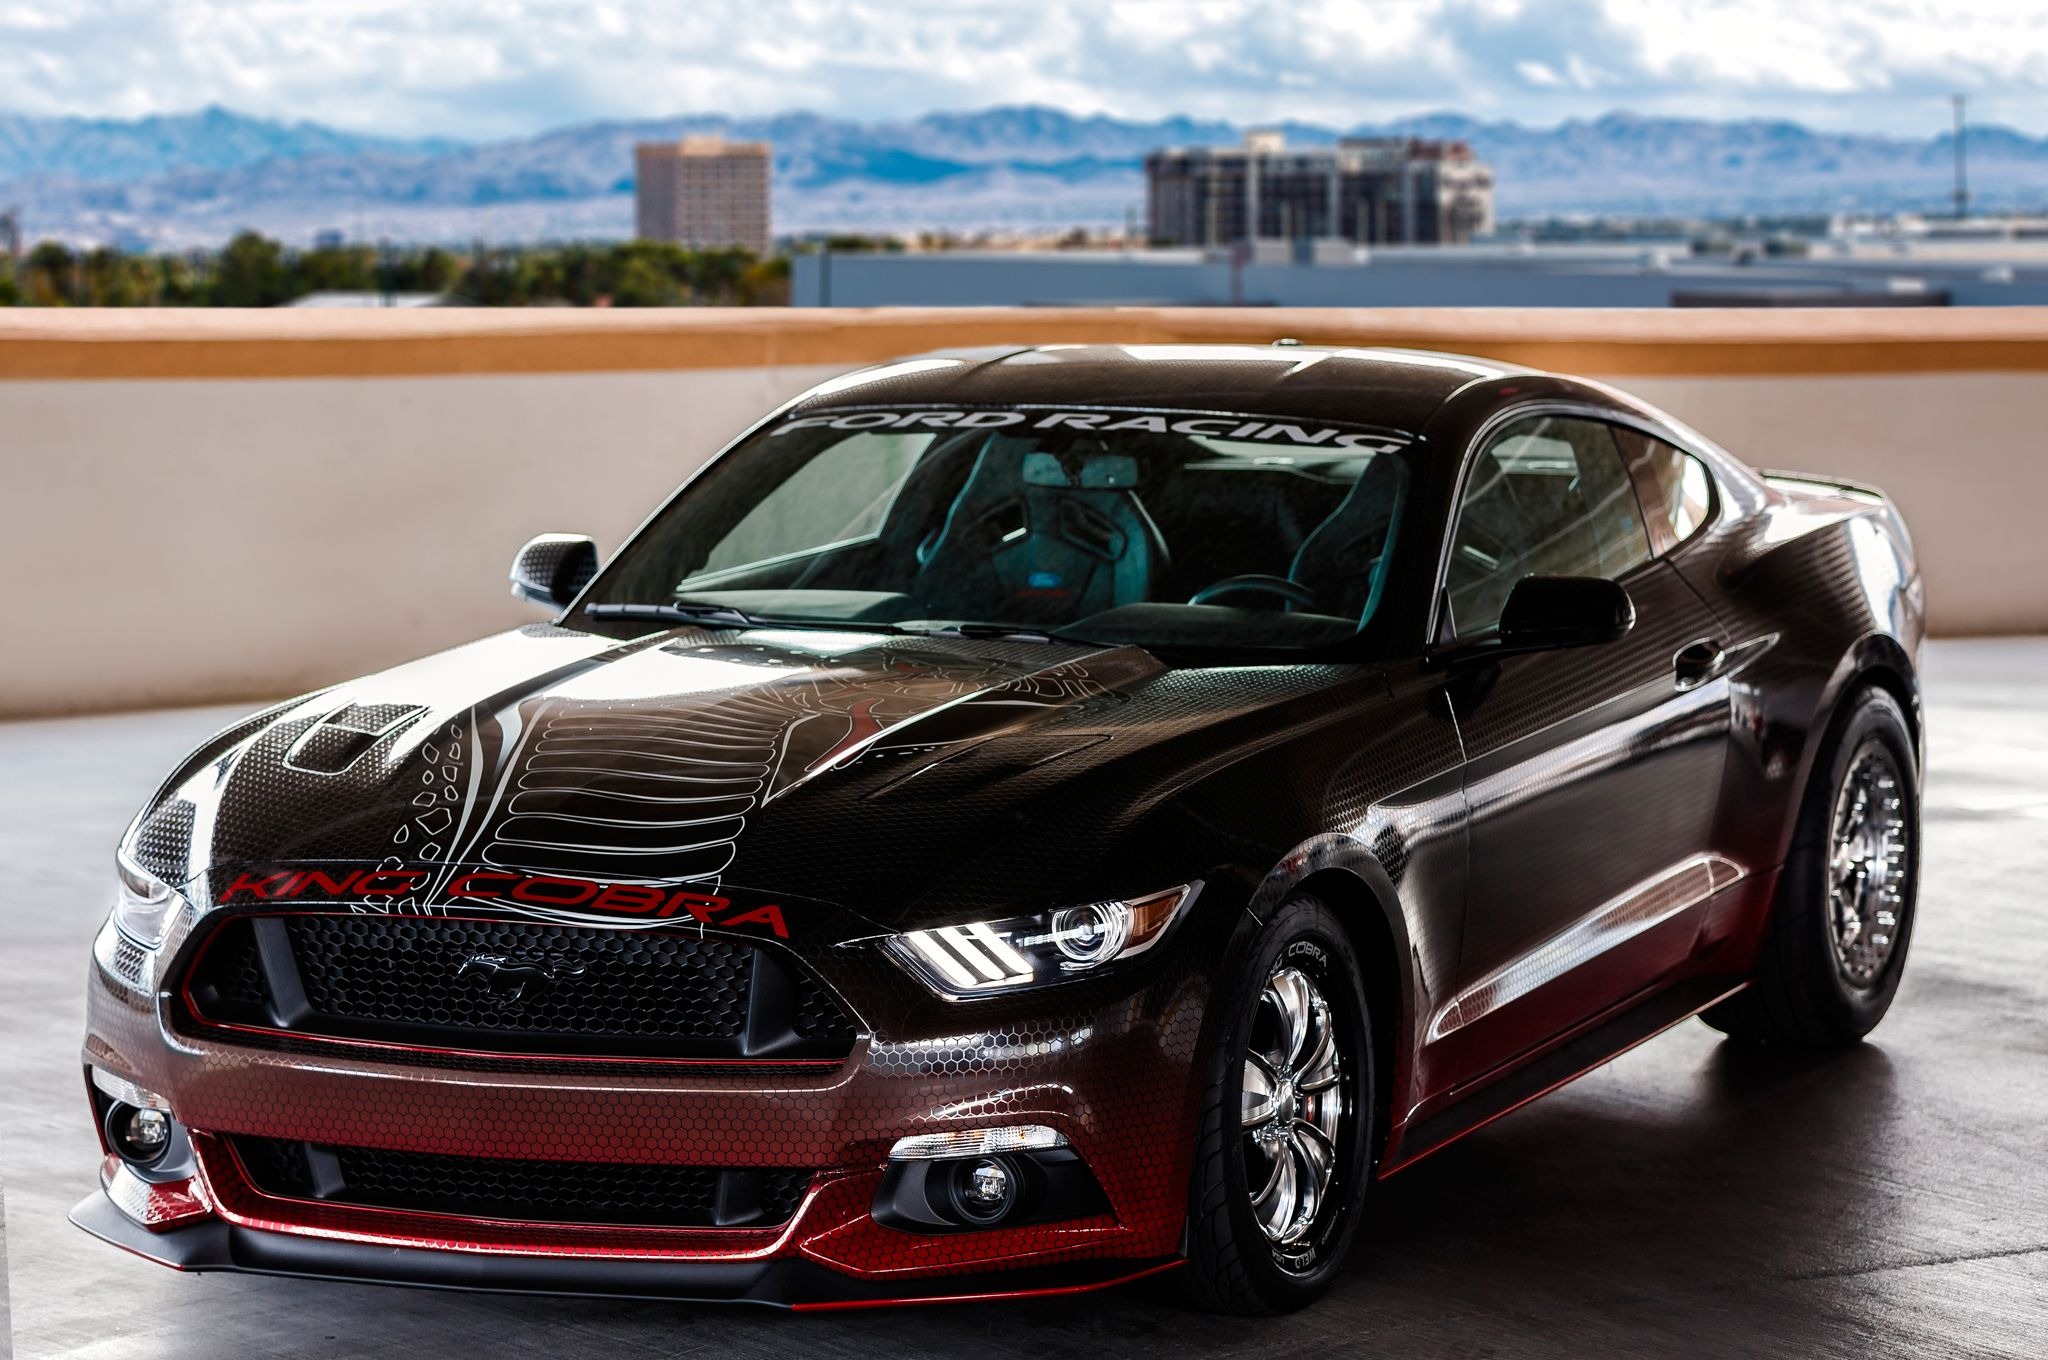 Drag Racing Appears To Be A Theme In  Sema Show In Las Vegas And Here Is Another Quarter Mile Special The Latest  Ford Mustang Gt King Cobra